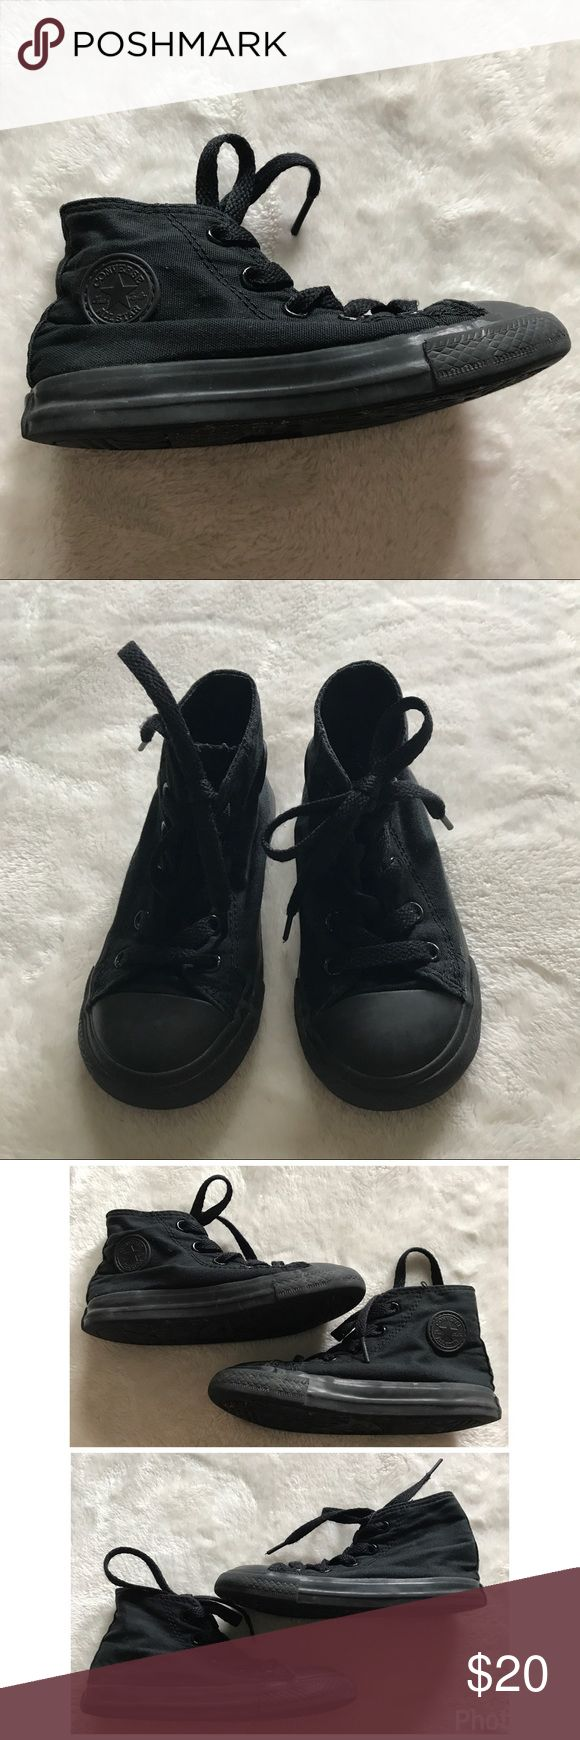 Converse all star black toddler sz 8 high tops Excellent condition all black toddler sz 8 converse all star high top sneakers. Very lightly worn. Can be For boy or girl! Converse Shoes Sneakers